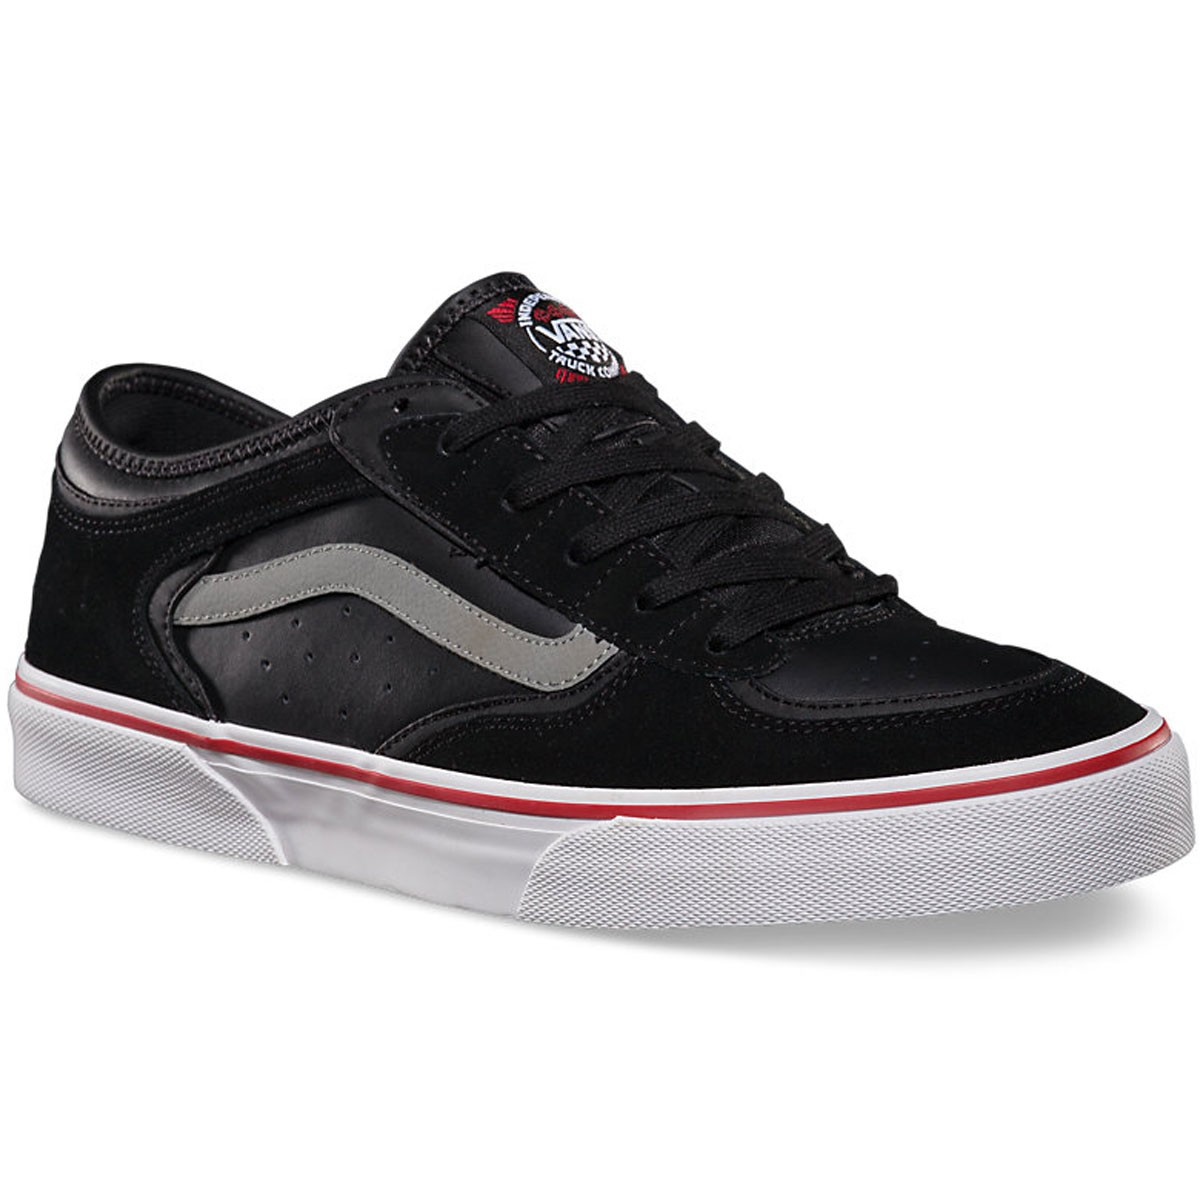 Vans Independent Rowley Pro Shoes - Black - 10.0